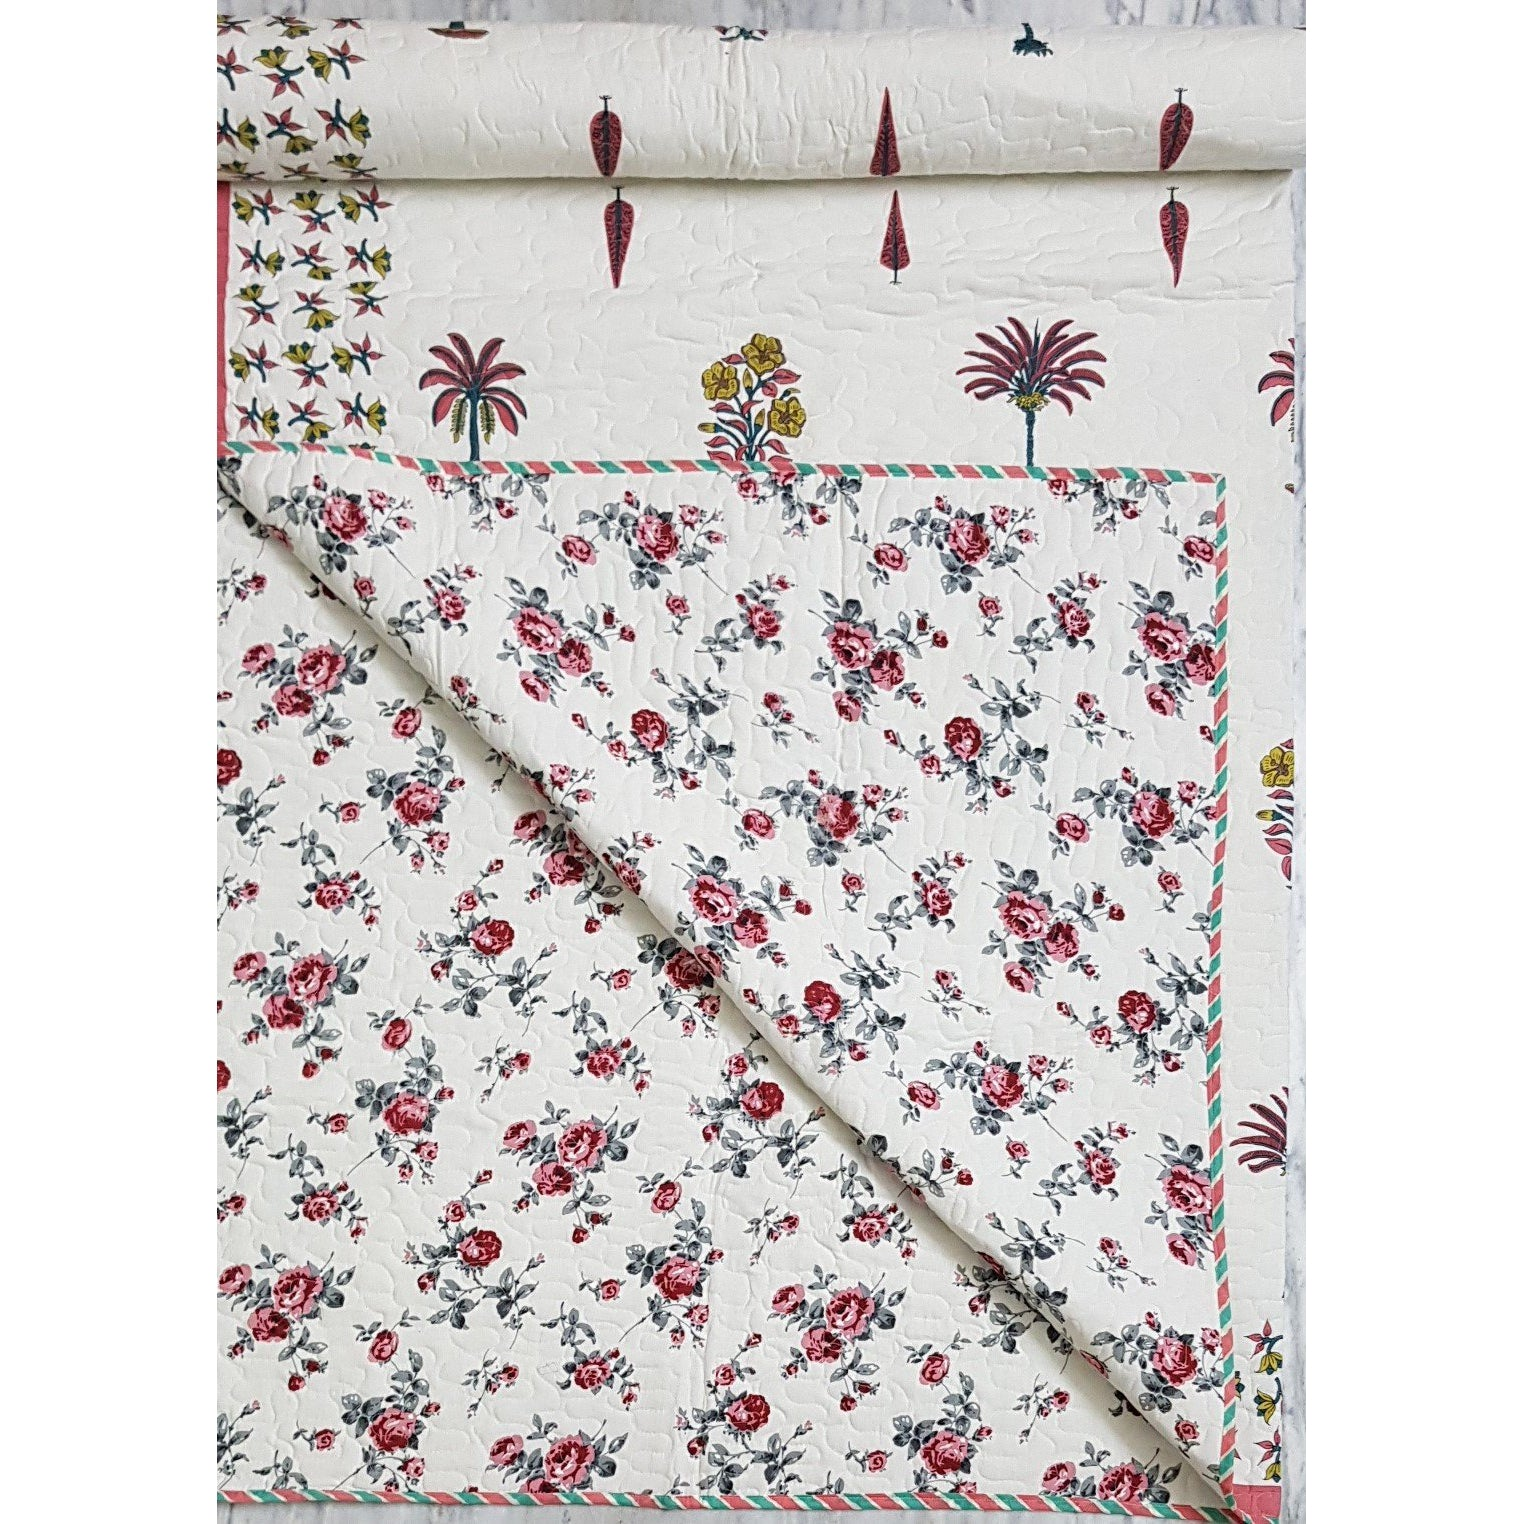 Bagru Hand Printed Reversible Double Bed Cotton Quilt - Vinshika